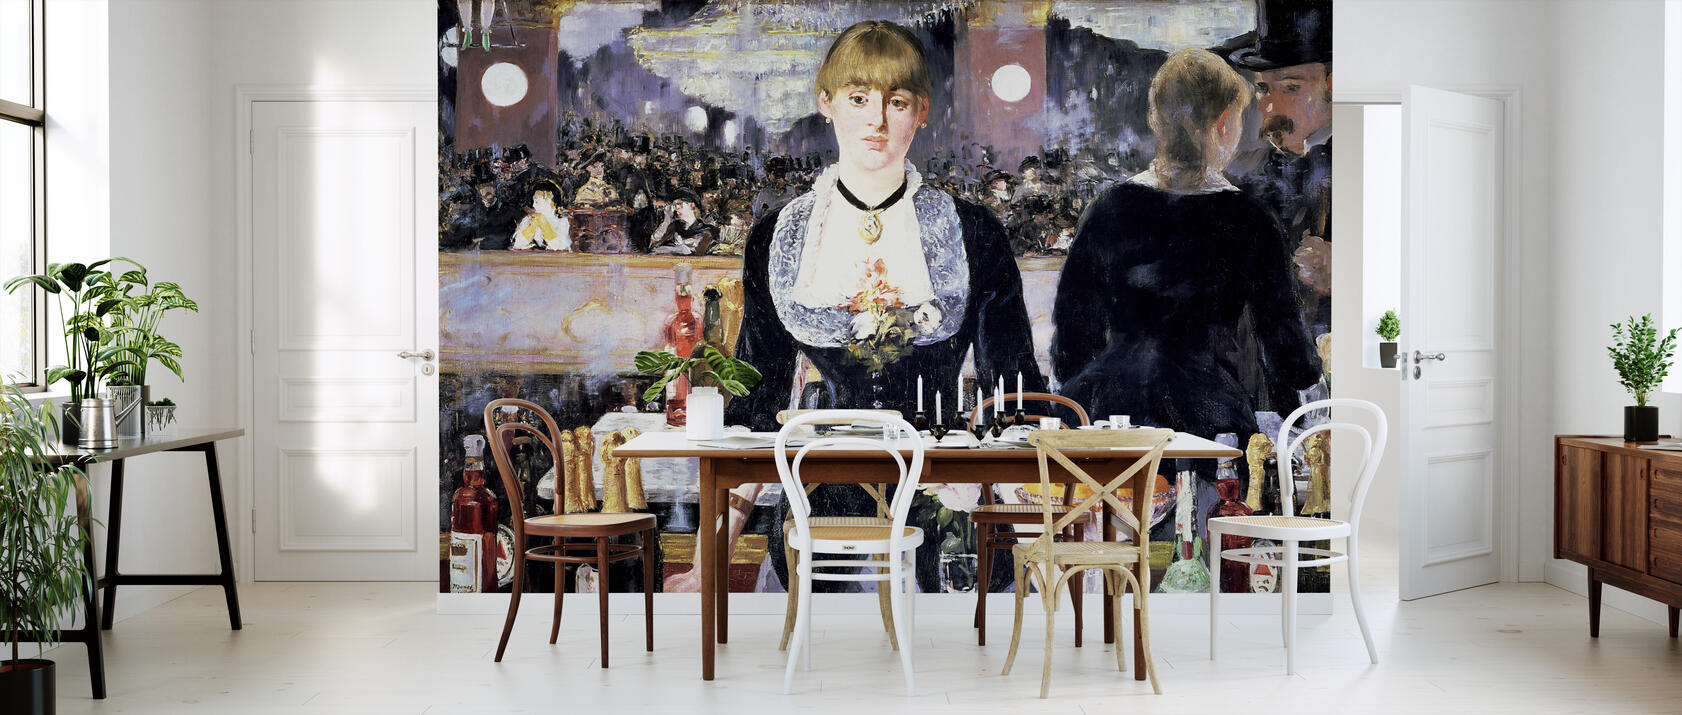 bar at folies bergere edouard manet fototapete nach ma. Black Bedroom Furniture Sets. Home Design Ideas